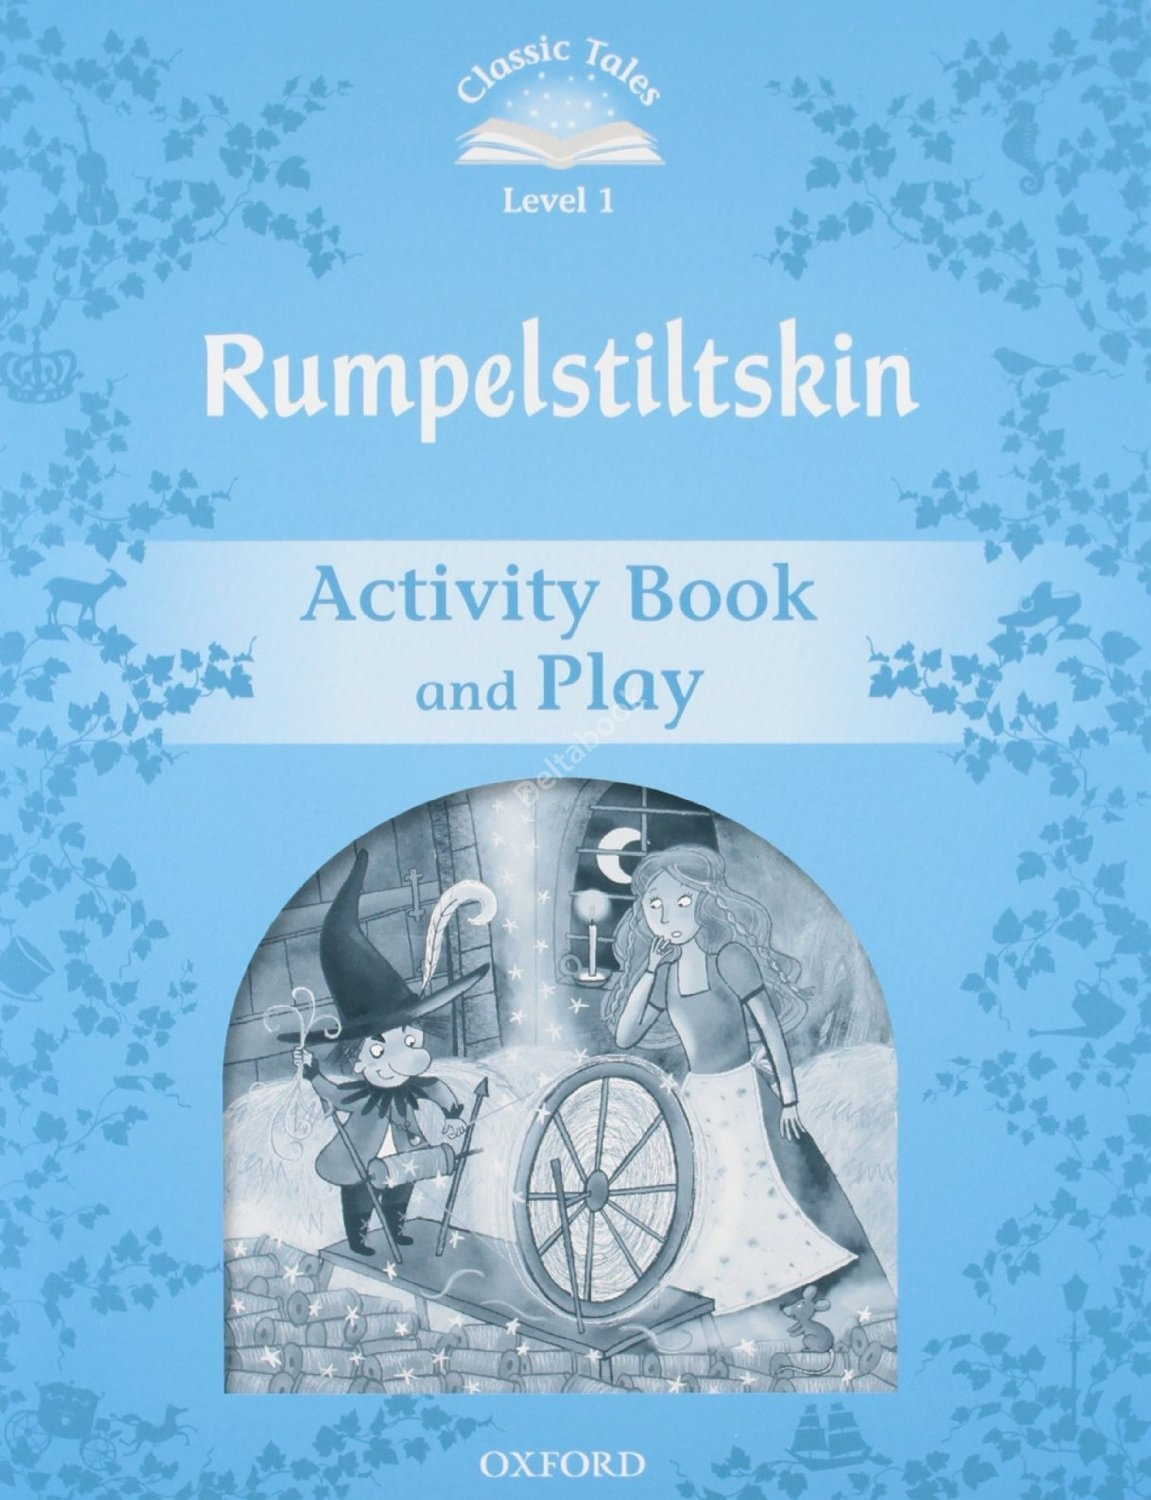 Rumpelstiltskin Activity Book and Play